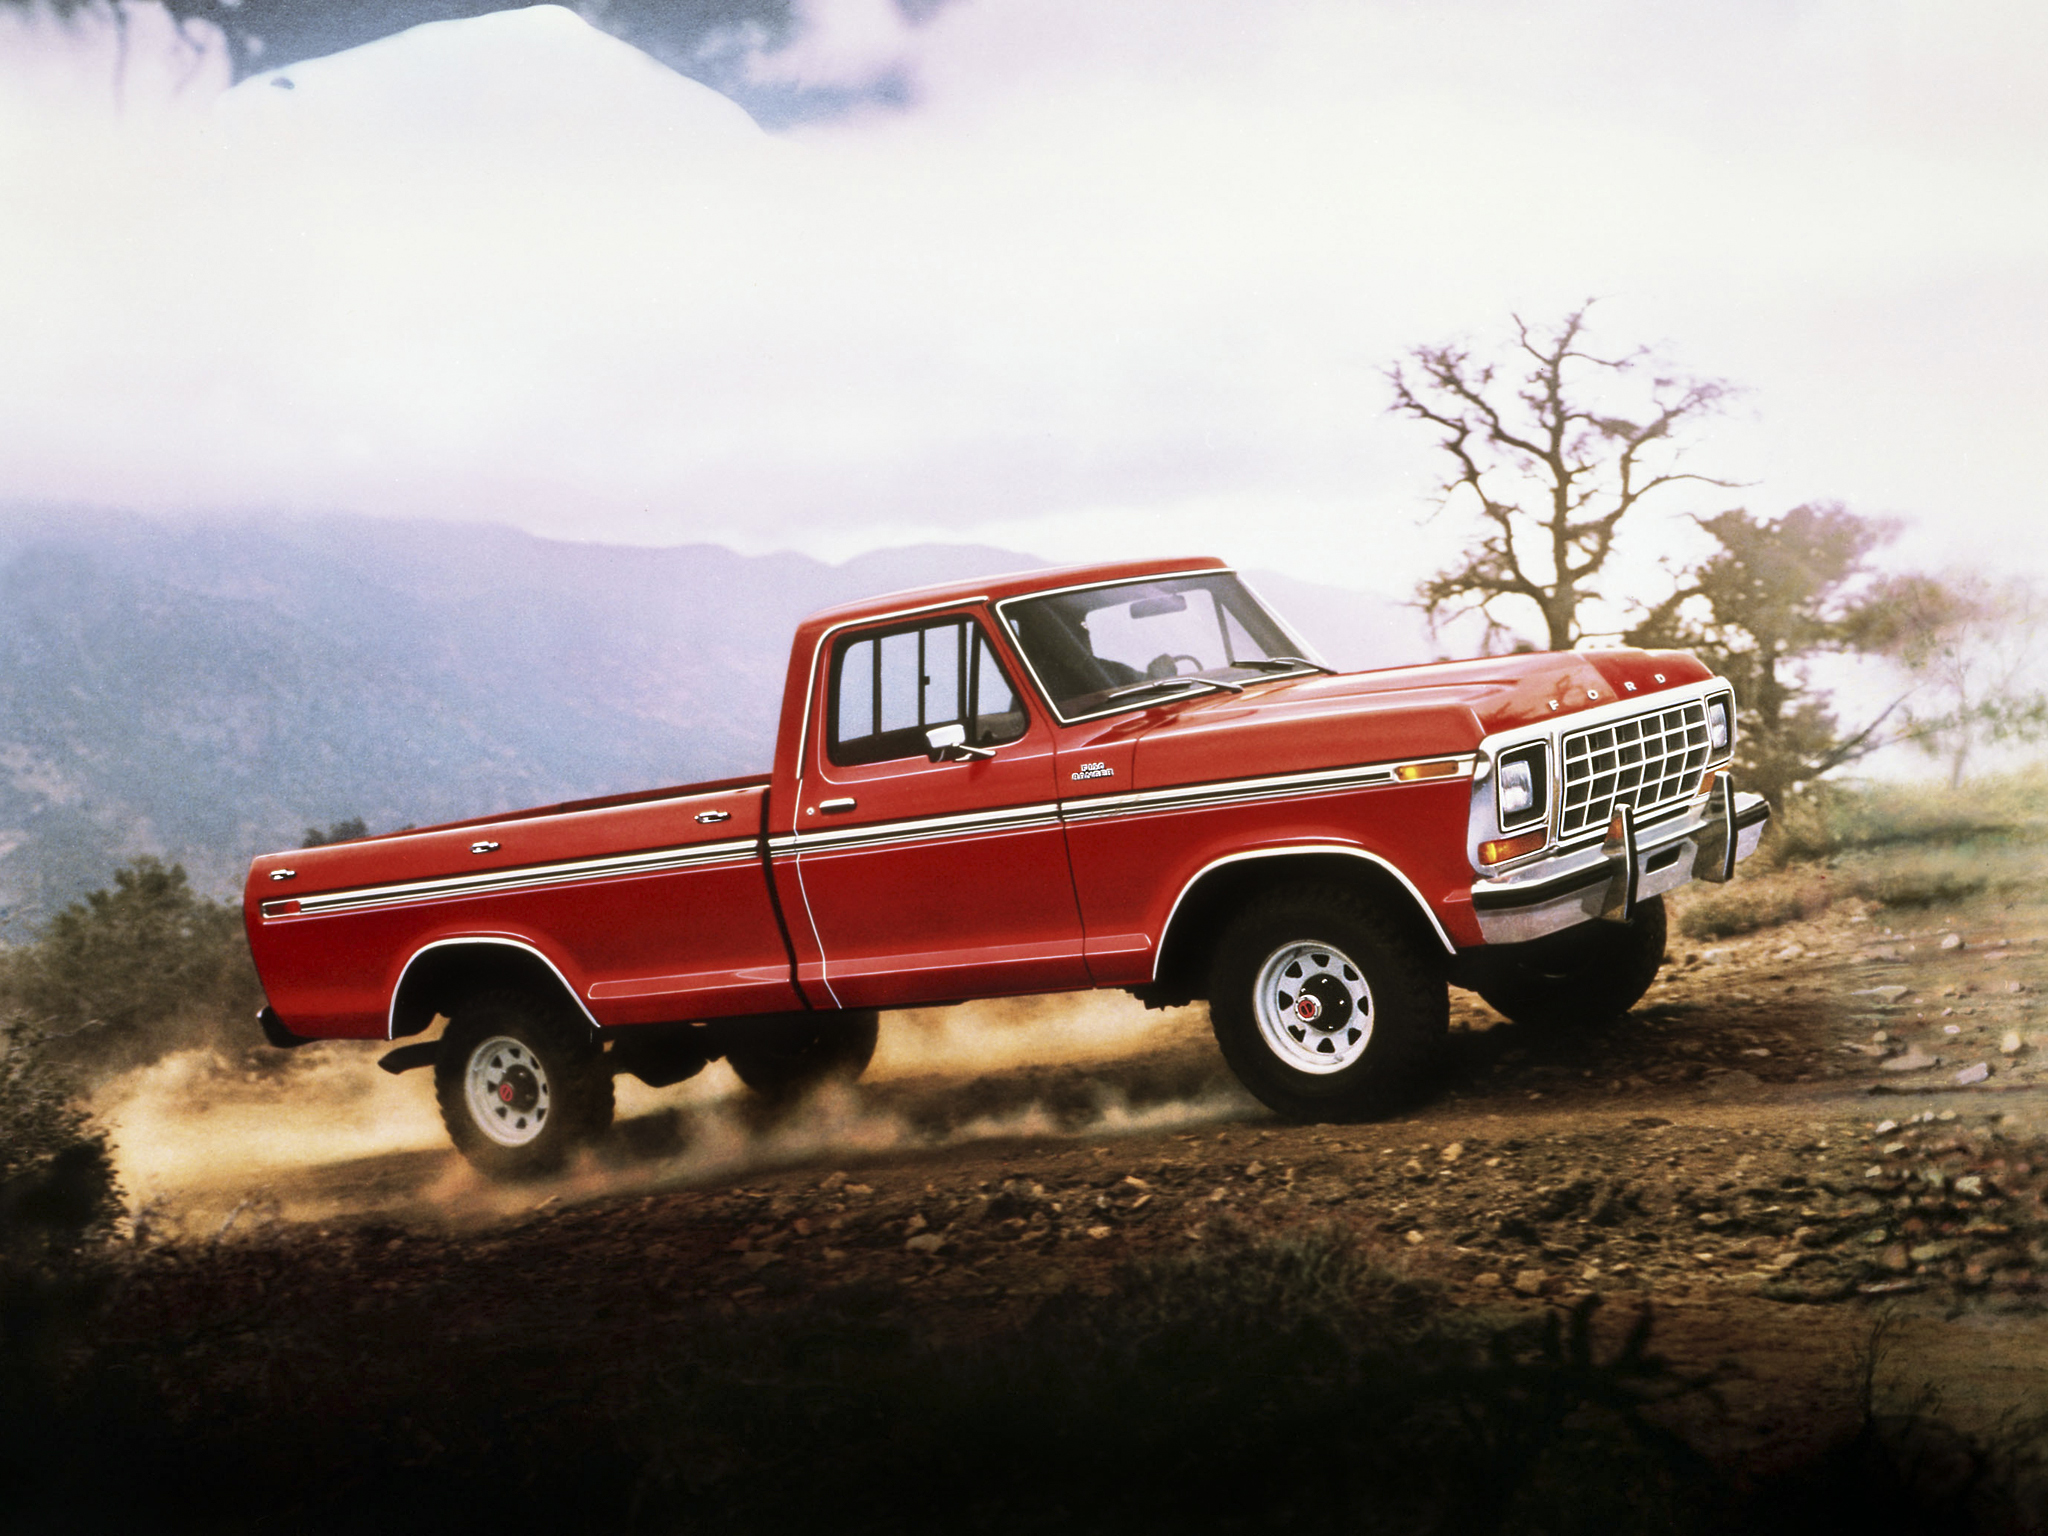 1979 Ford F 150 Ranger 4x4 pickup wallpaper background 2048x1536